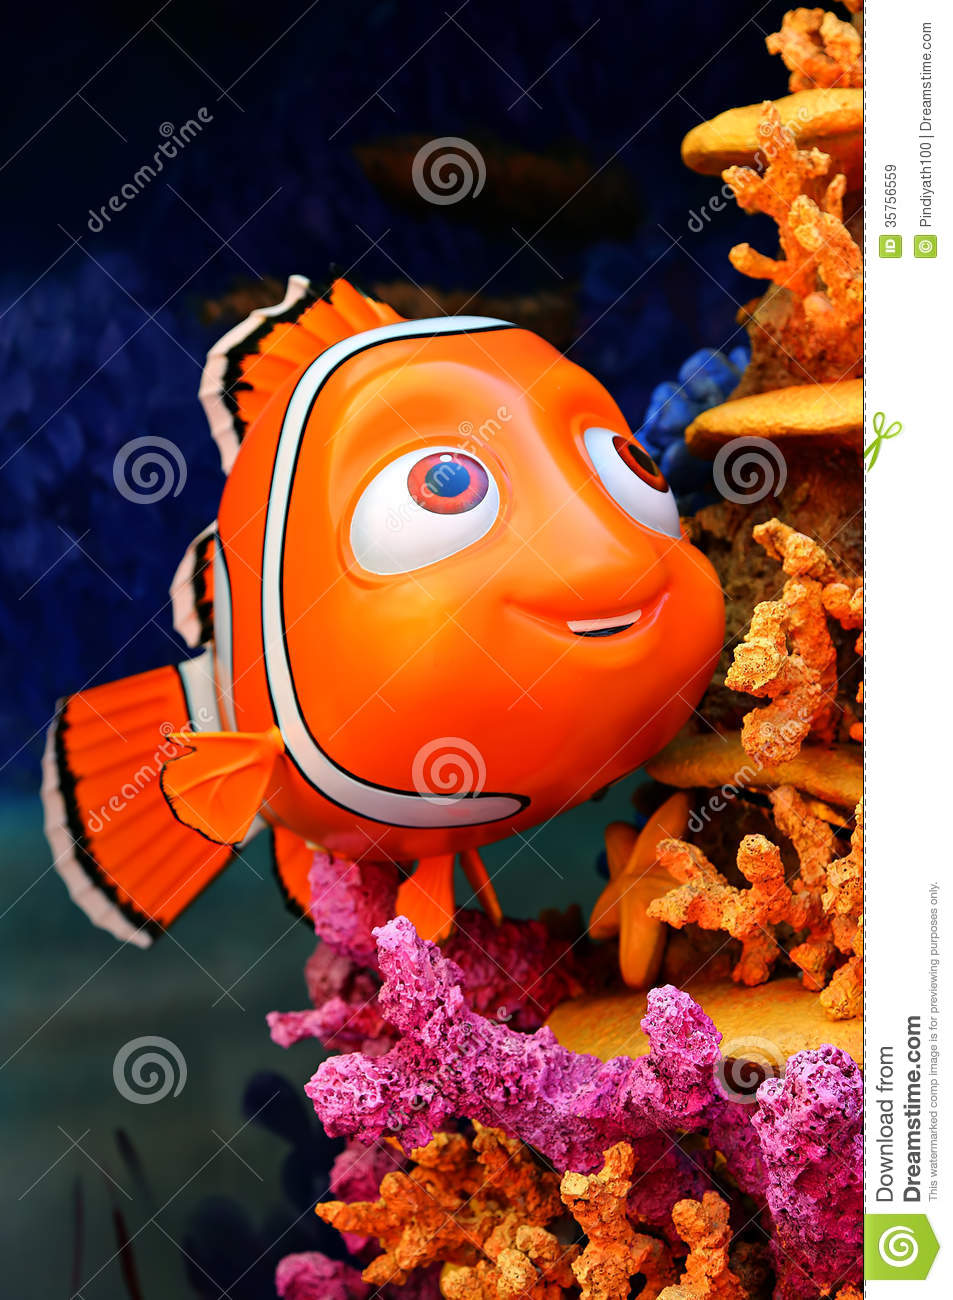 Of nemo the little cute fish from disney pixar movie finding nemo